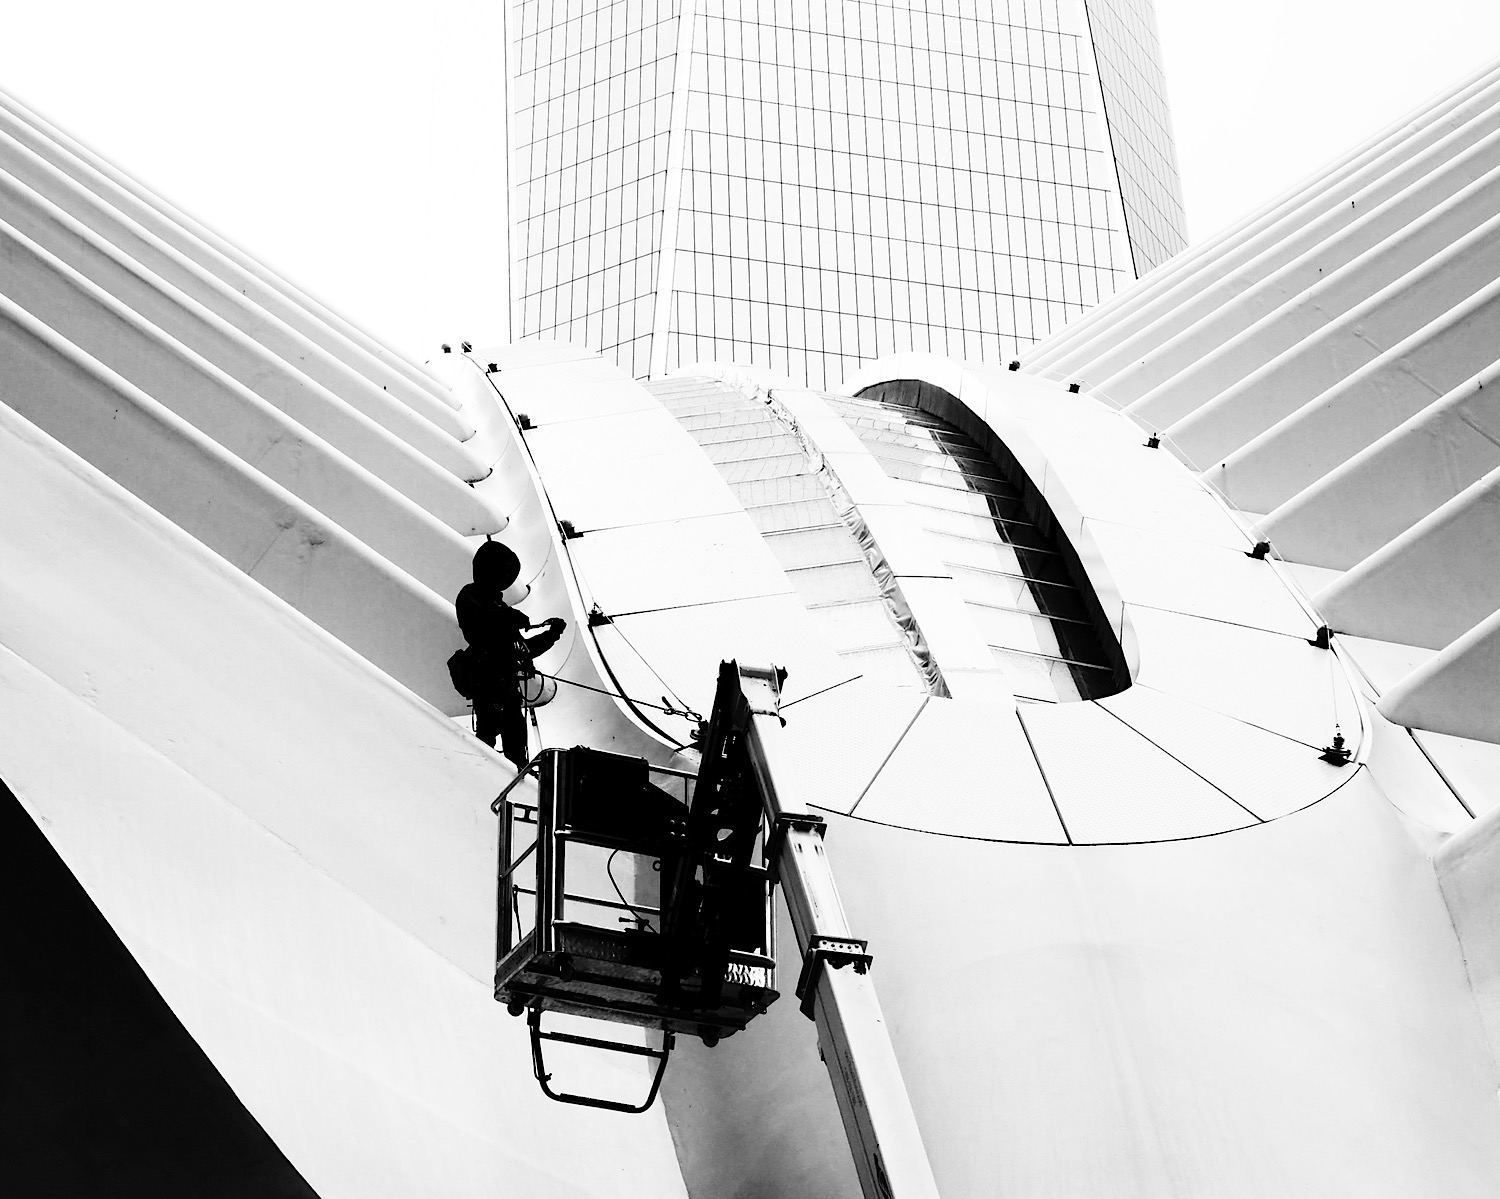 I took this picture in NYC specifically because of the repeating lines and patterns in the Oculus and the building behind it. I think they help bring a sense of depth to this rather stark composition.